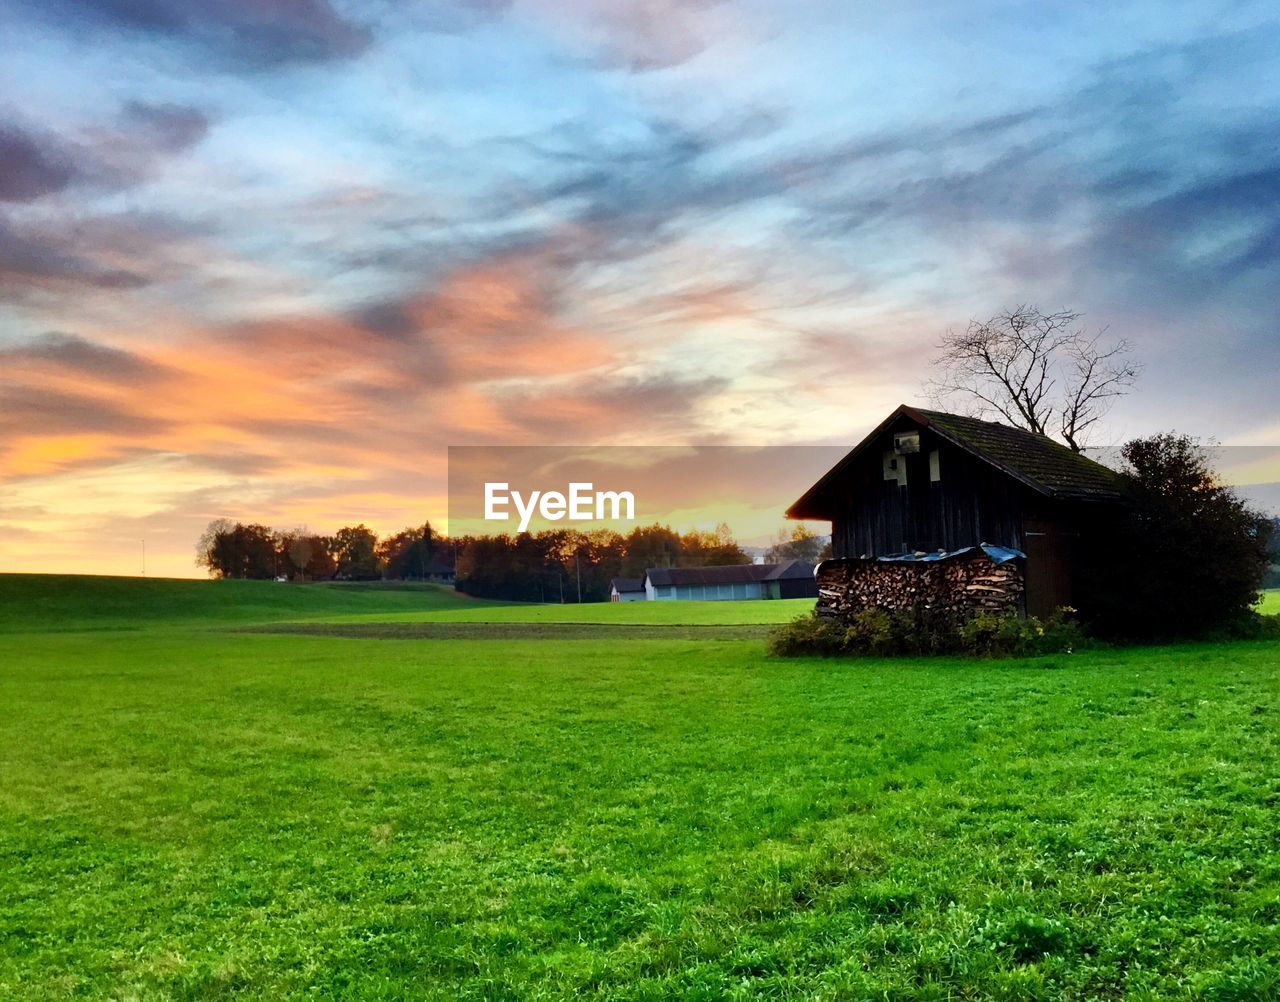 grass, sky, tree, tranquility, landscape, beauty in nature, nature, field, house, no people, tranquil scene, built structure, scenics, sunset, architecture, green color, growth, outdoors, farmhouse, day